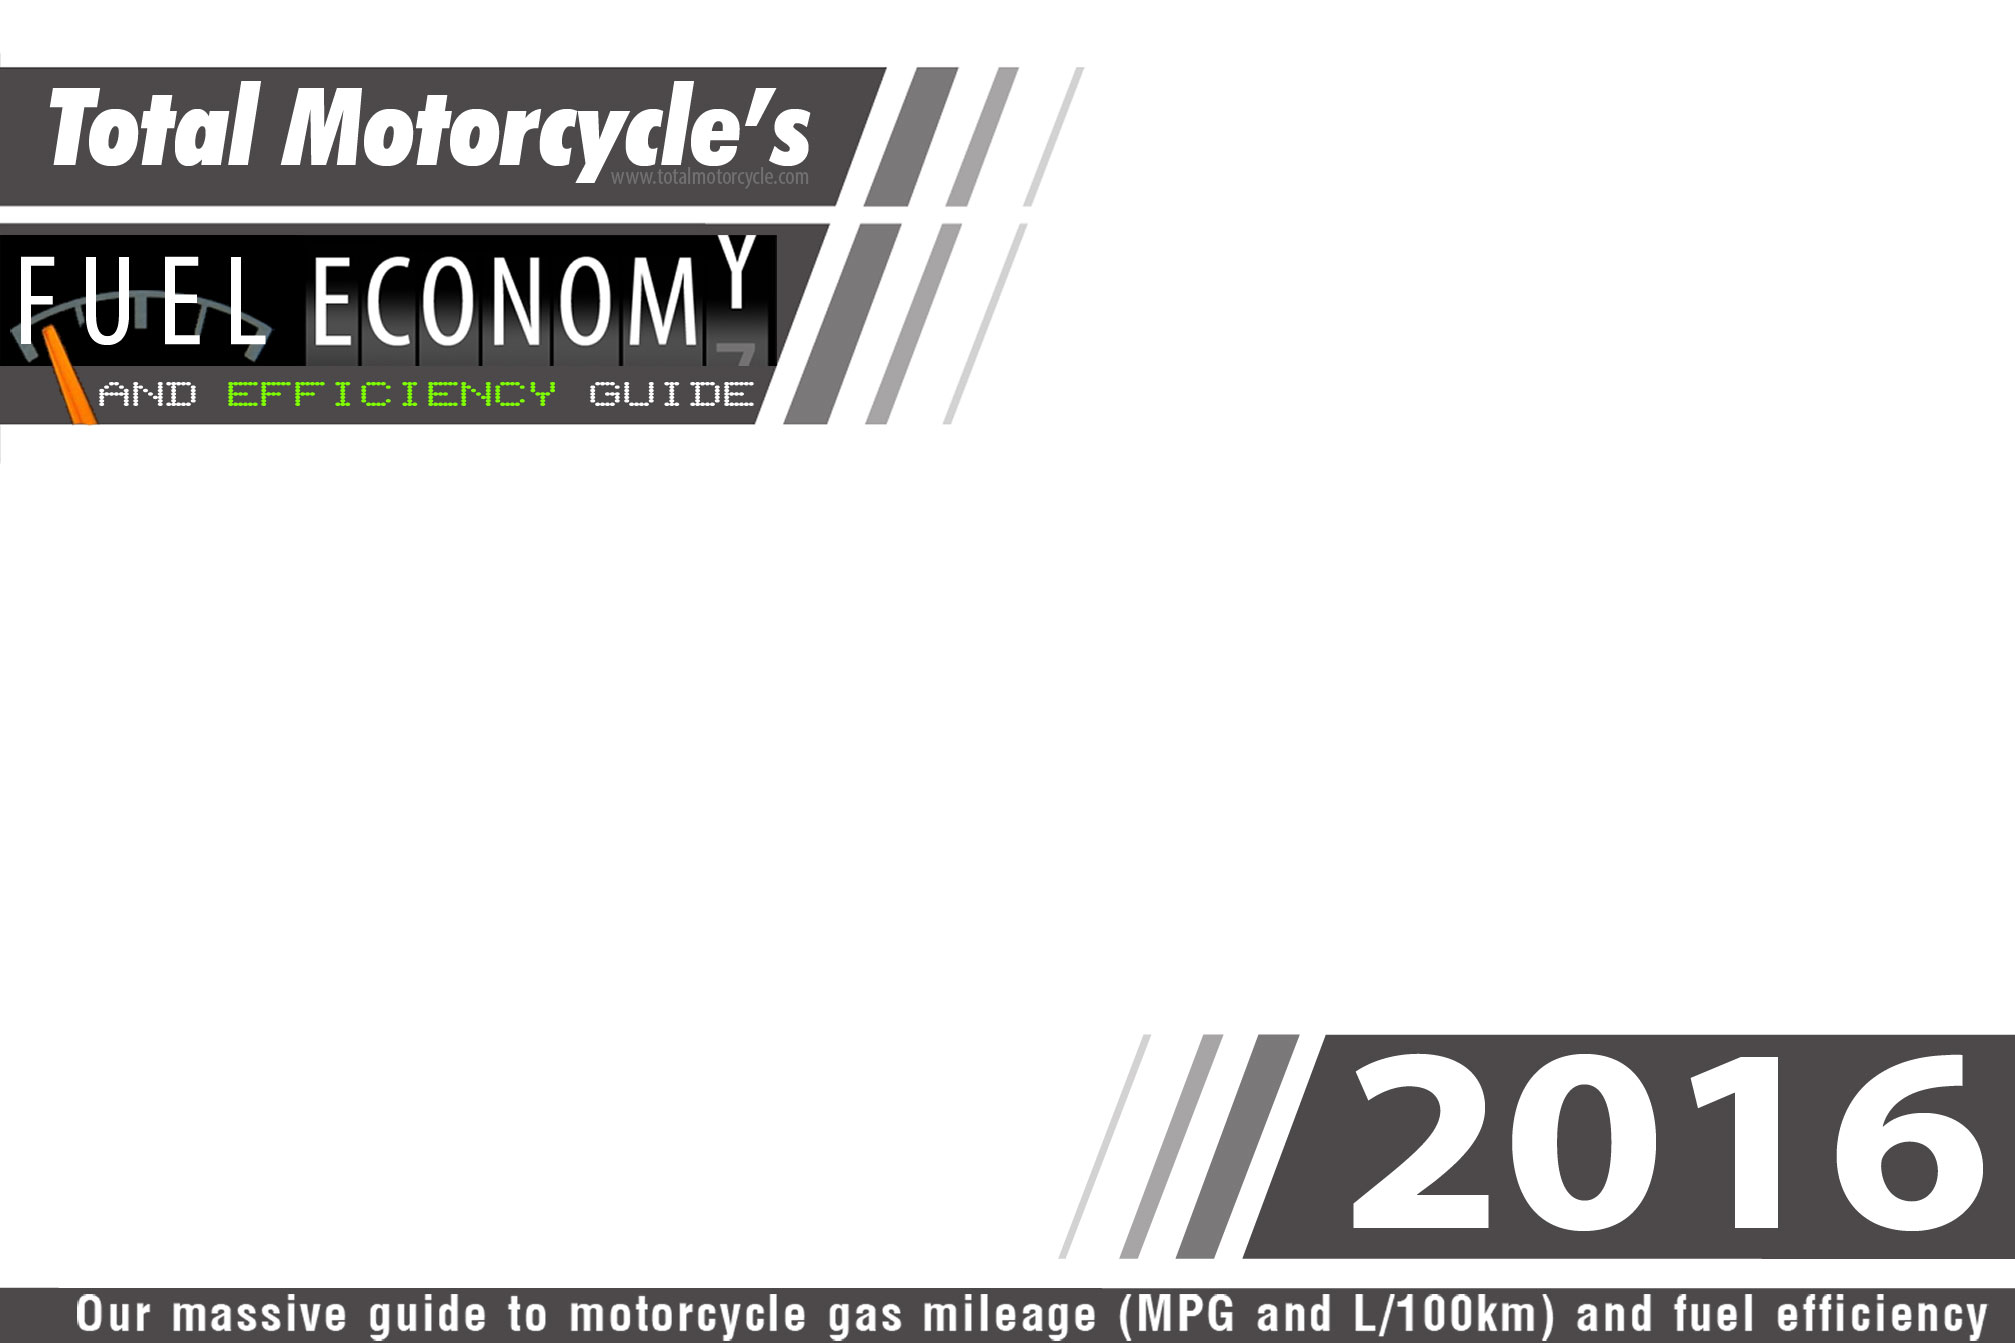 2016 motorcycle model fuel economy guide in mpg and l 100km rh totalmotorcycle com 2004 fuel economy guide 2014 Fuel Mileage Guide